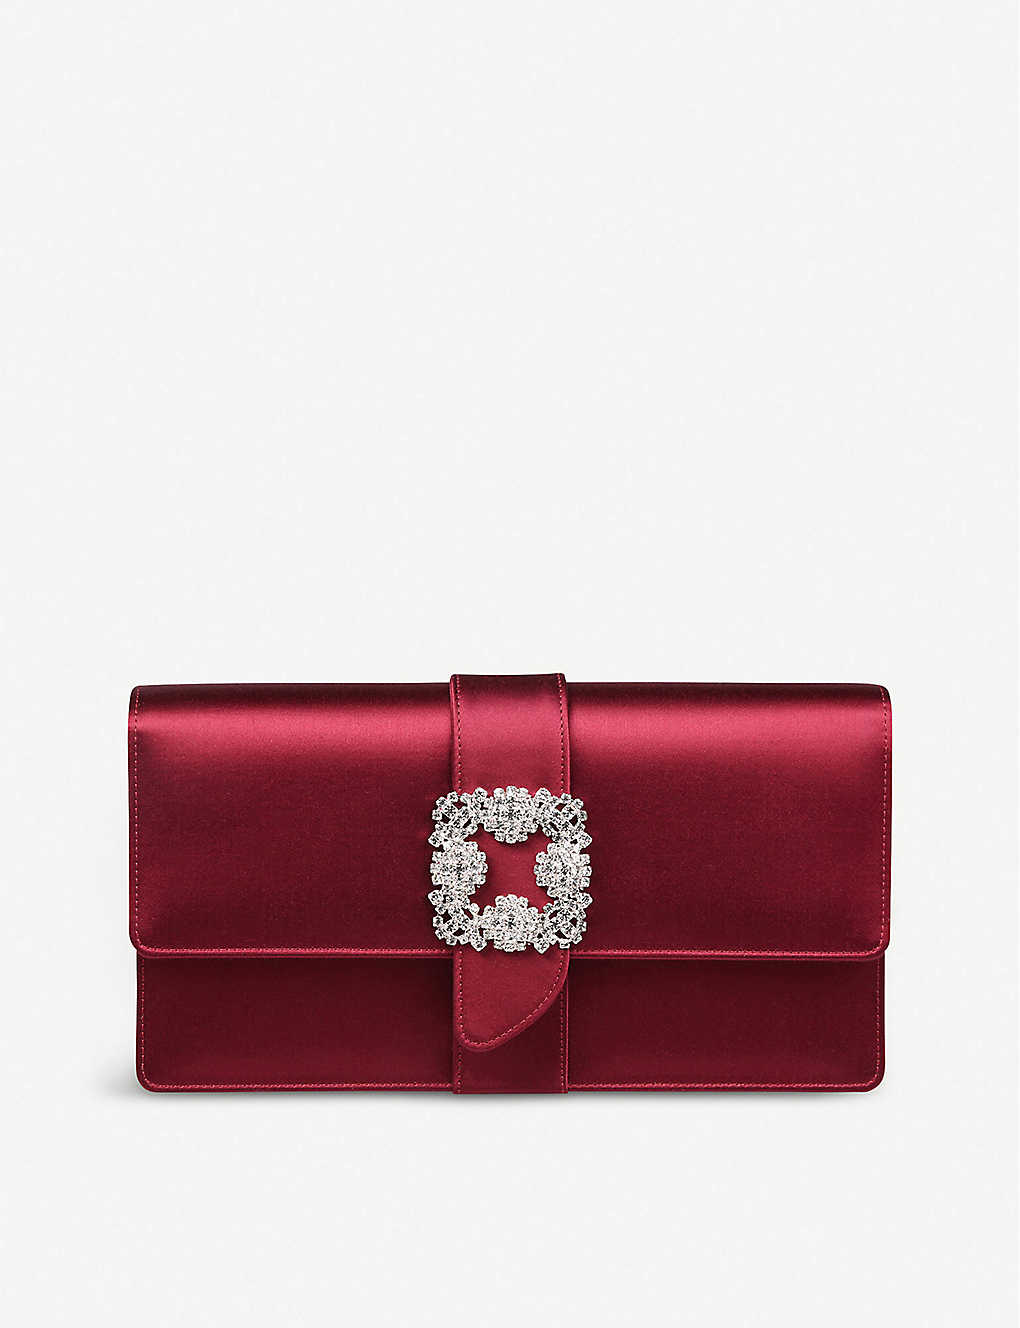 MANOLO BLAHNIK: Capri satin clutch bag